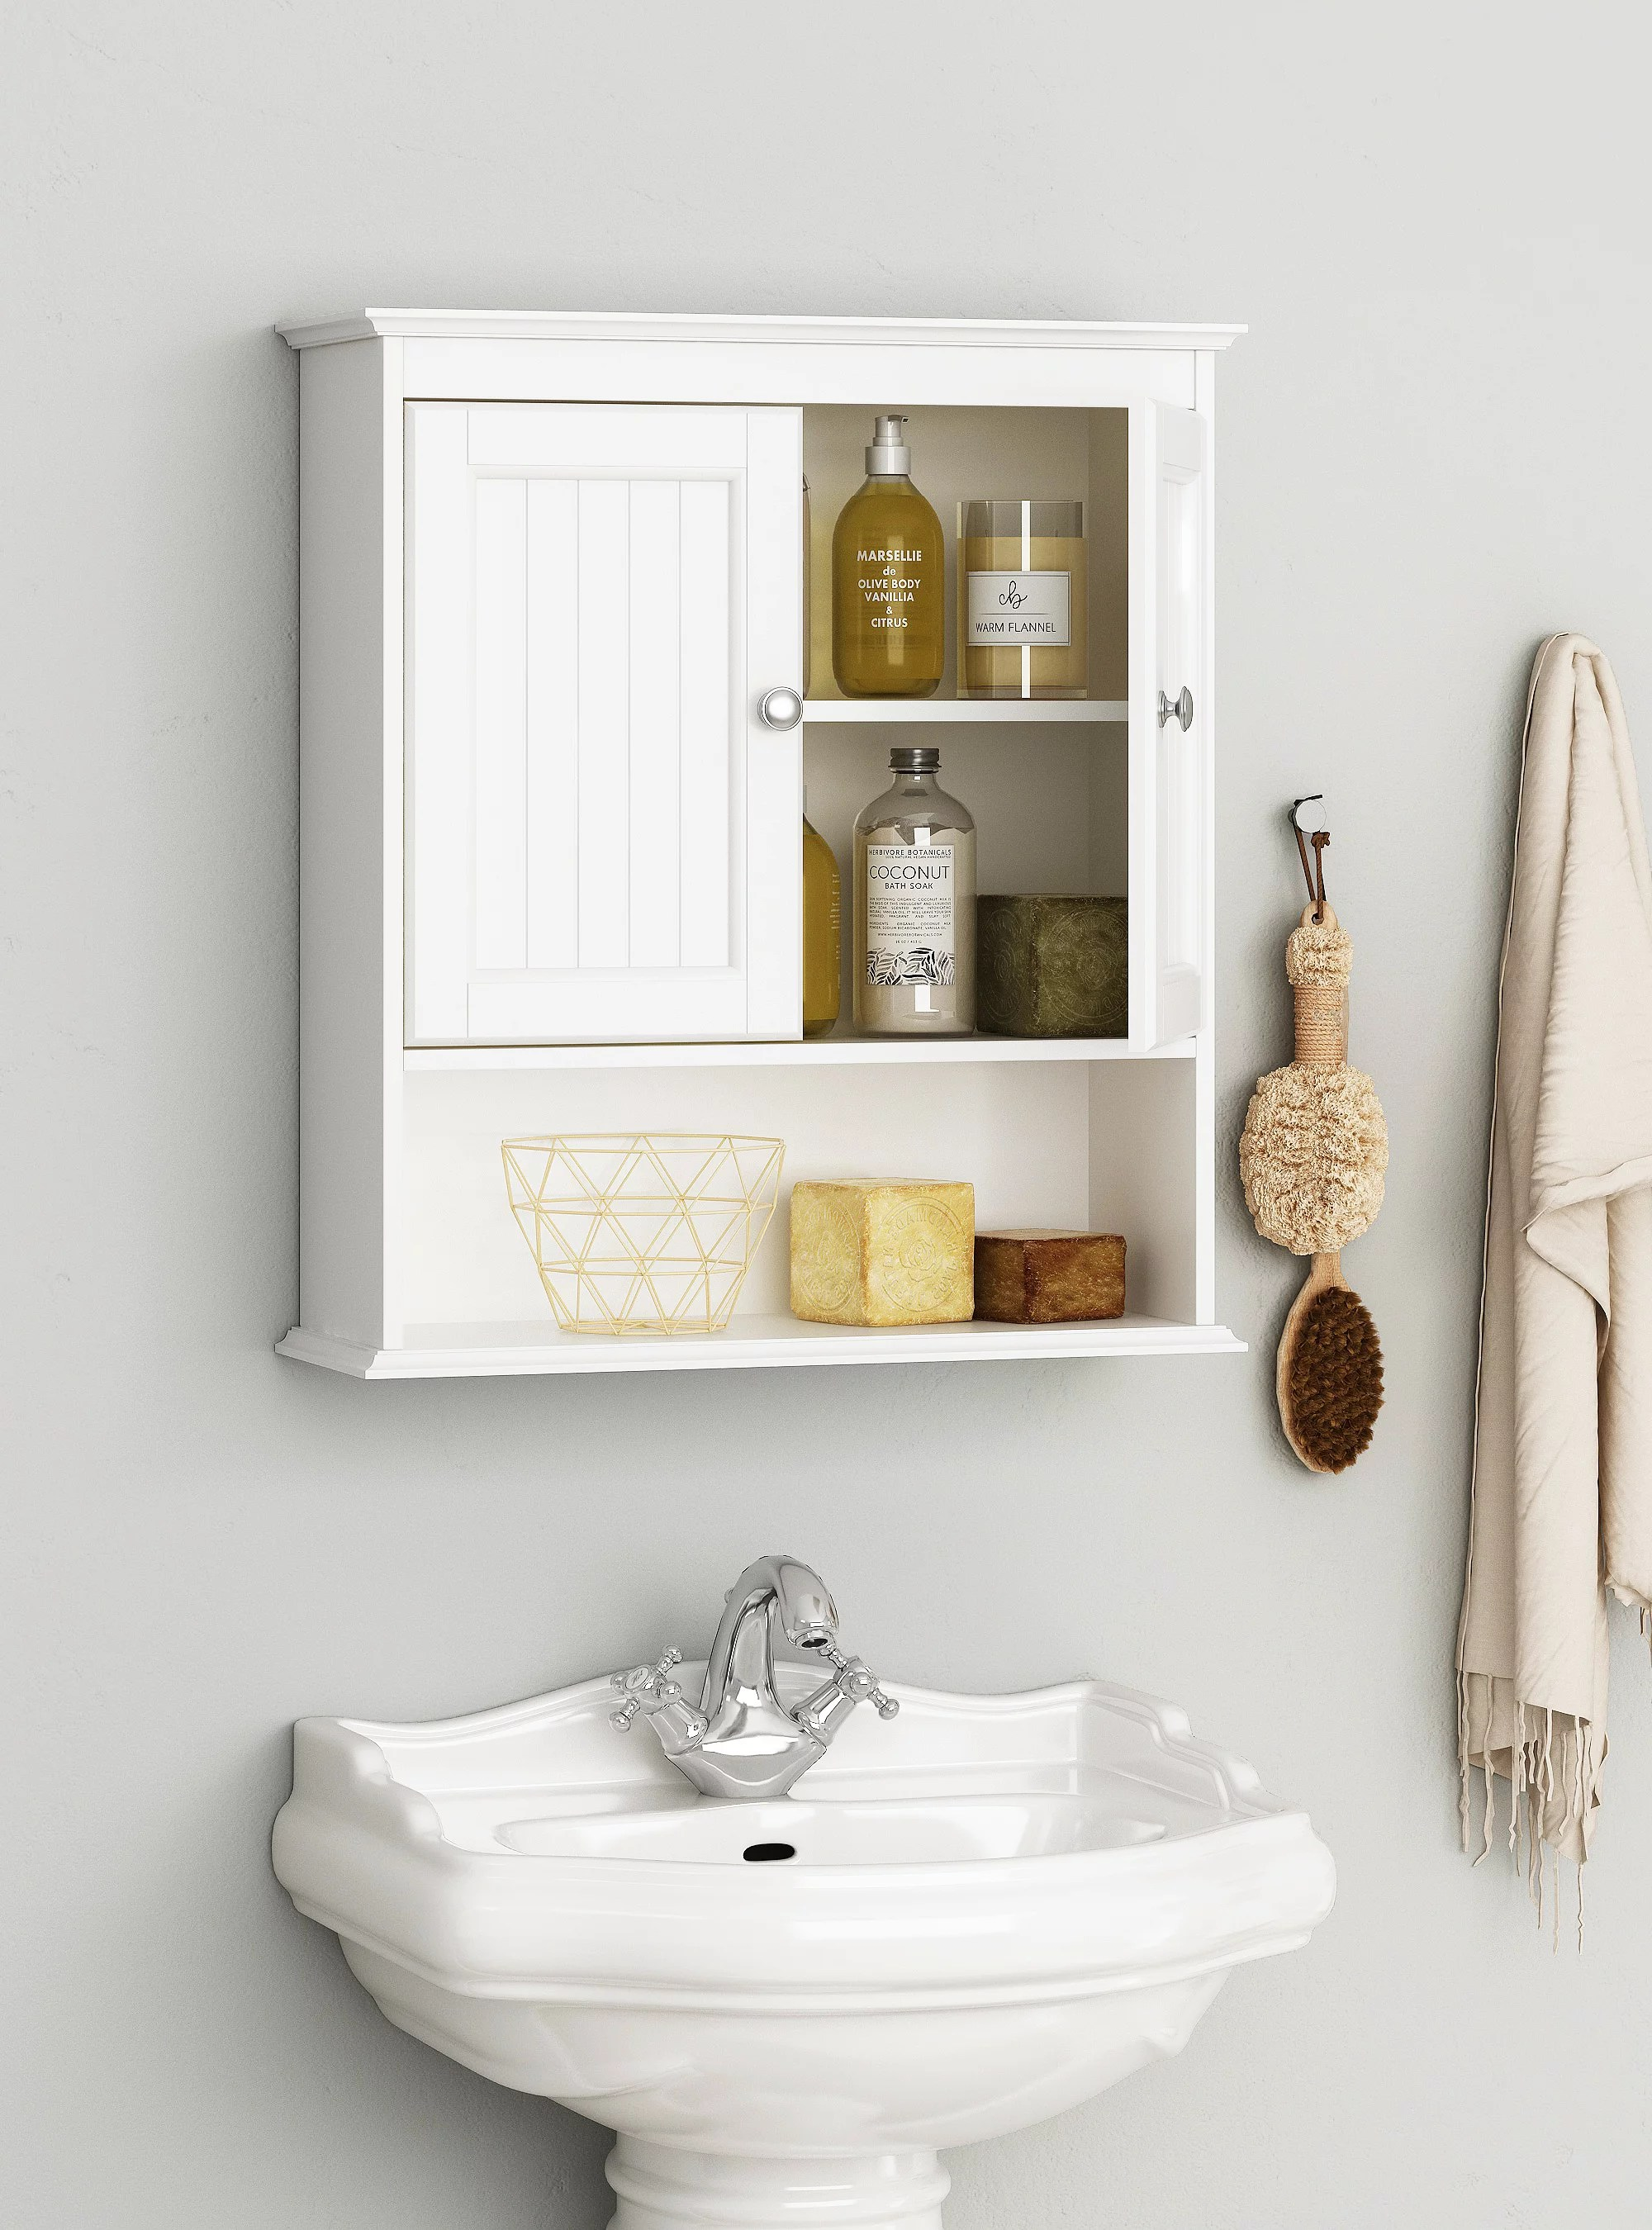 Spirich Home Bathroom Cabinet Wall Mounted With Doors Wood Hanging Cabinet Wall Cabinets With Doors And Shelves Over The Toilet Bathroom Wall Cabinet White Walmart Com Walmart Com